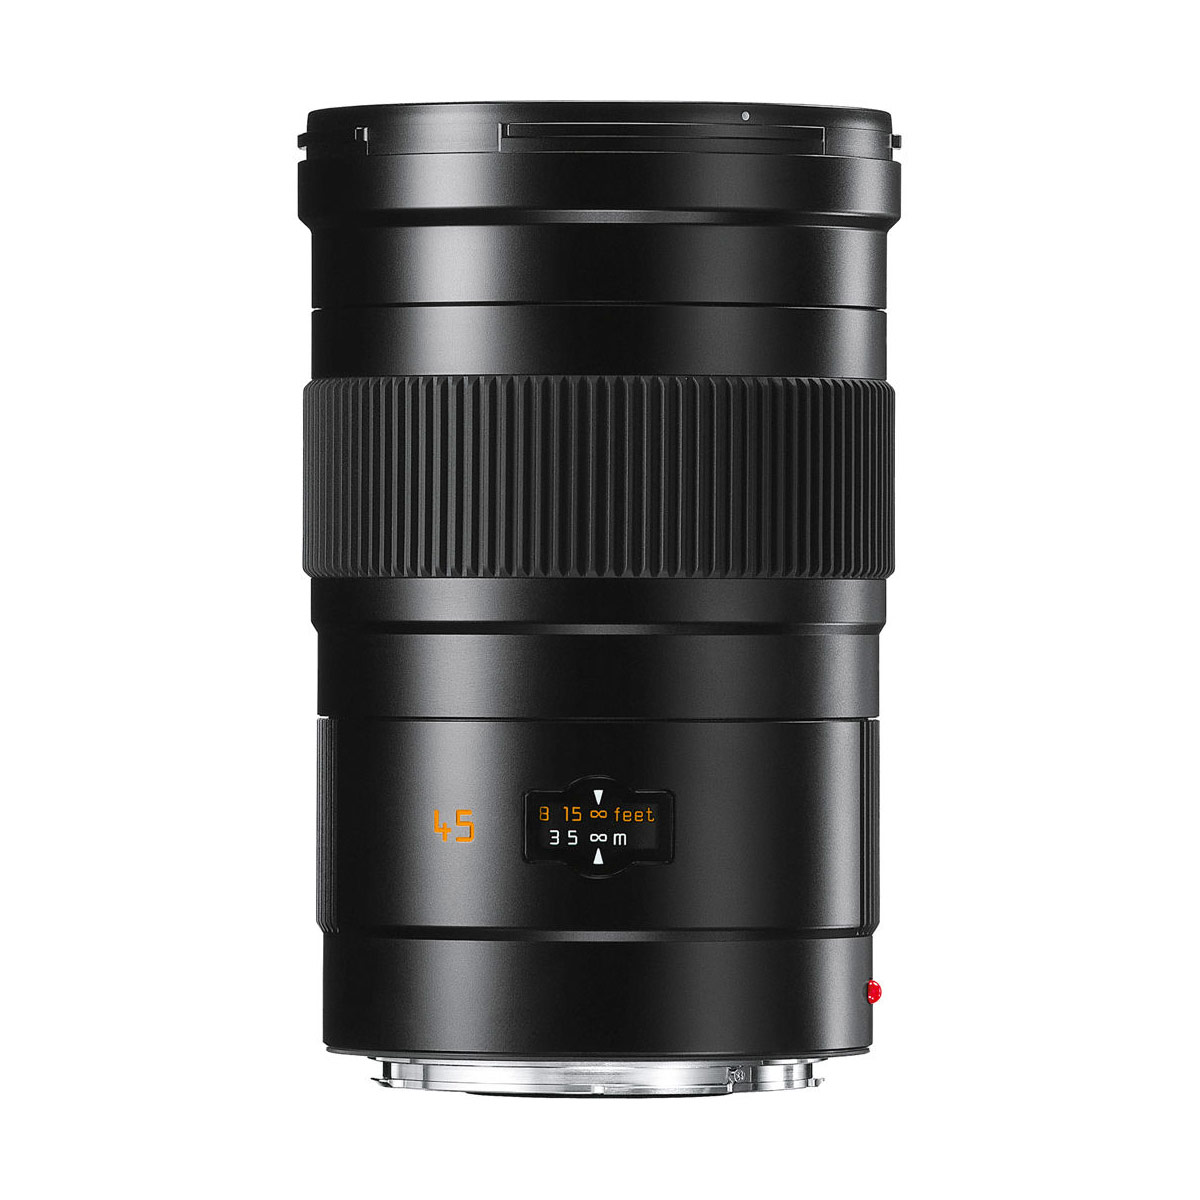 Leica Elmarit-S 45mm f/2.8 Asph Medium Format Lens - Side View